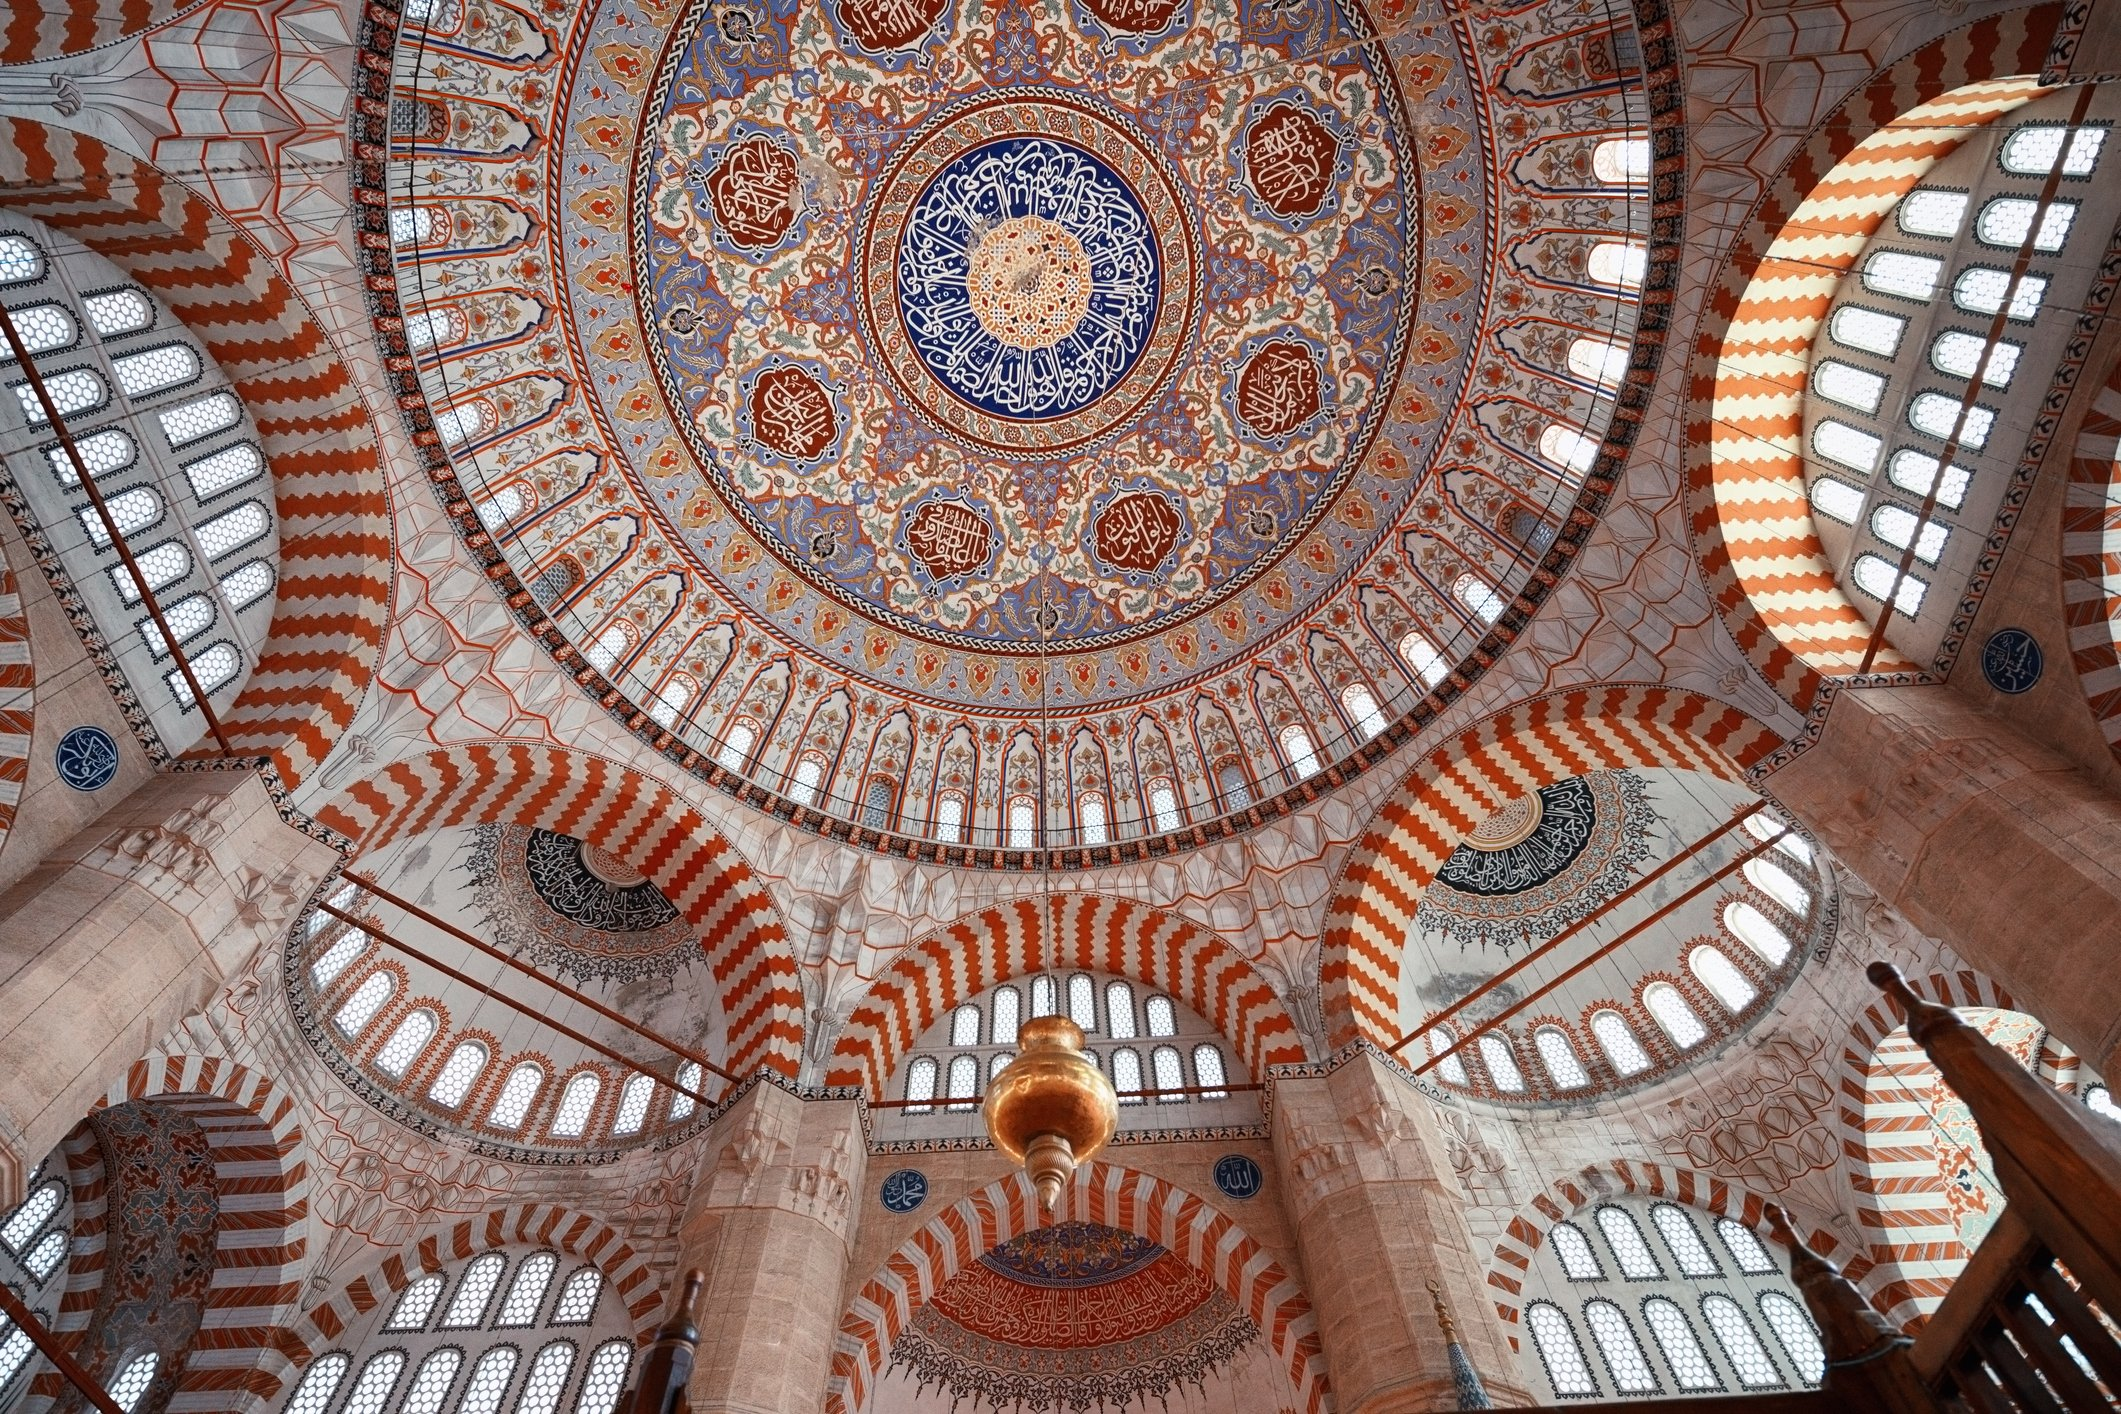 The Selimiye Mosque was designed and built by famous Ottoman architect Mimar Sinan. (iStock Photo)